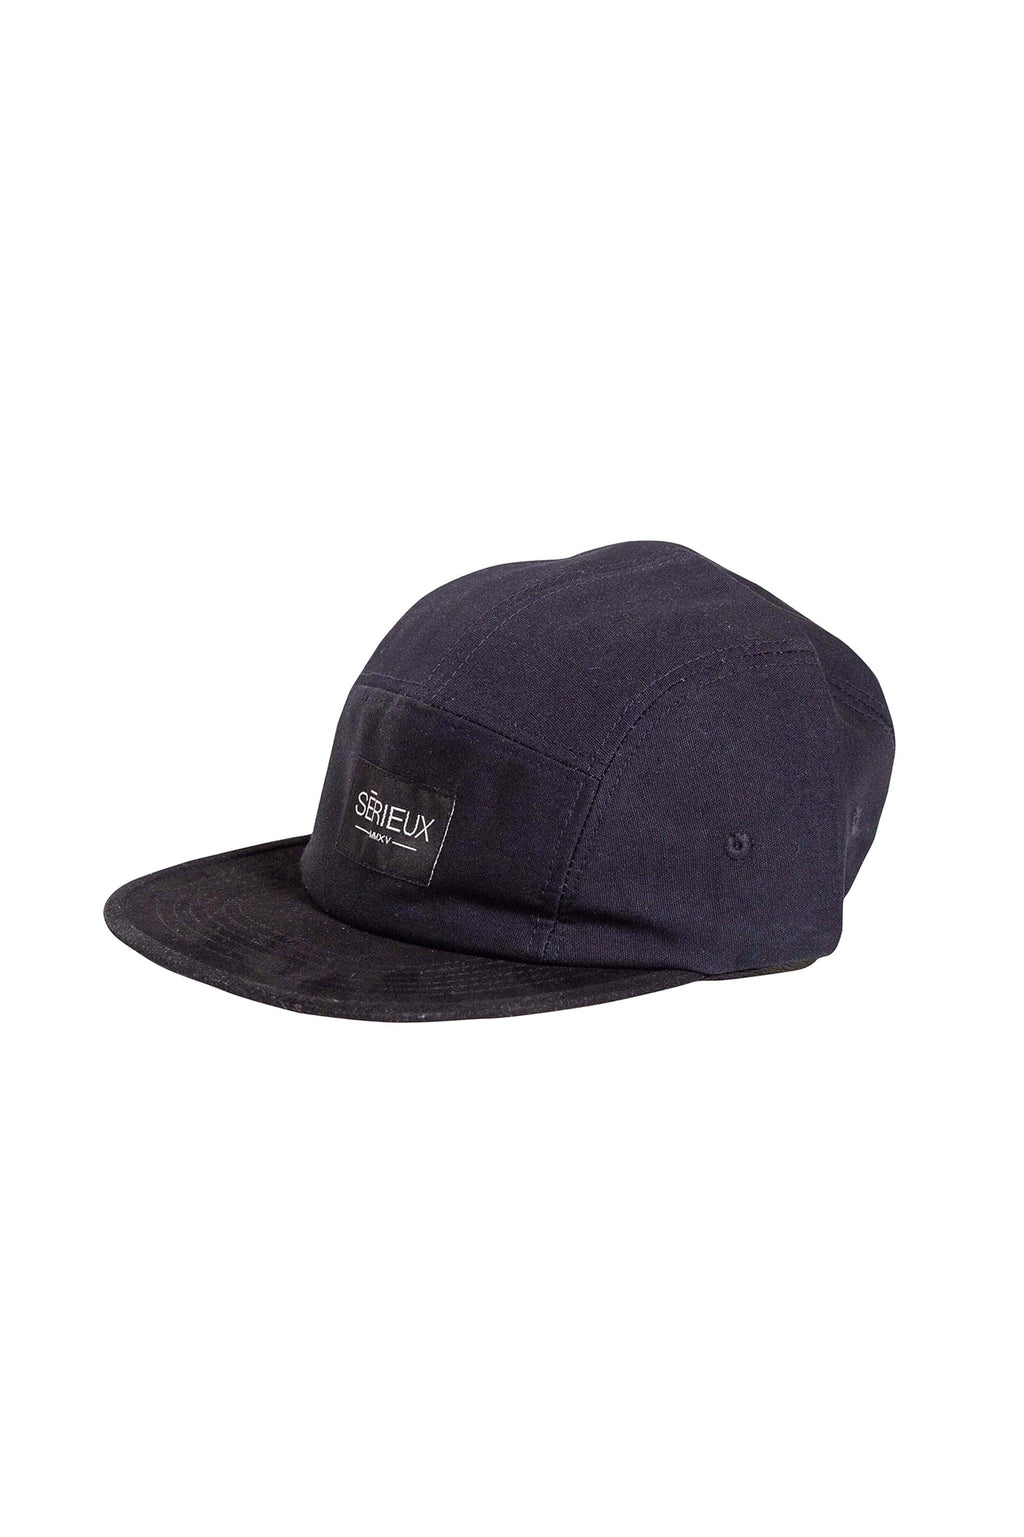 X-Panel Navy Suede - Serieux